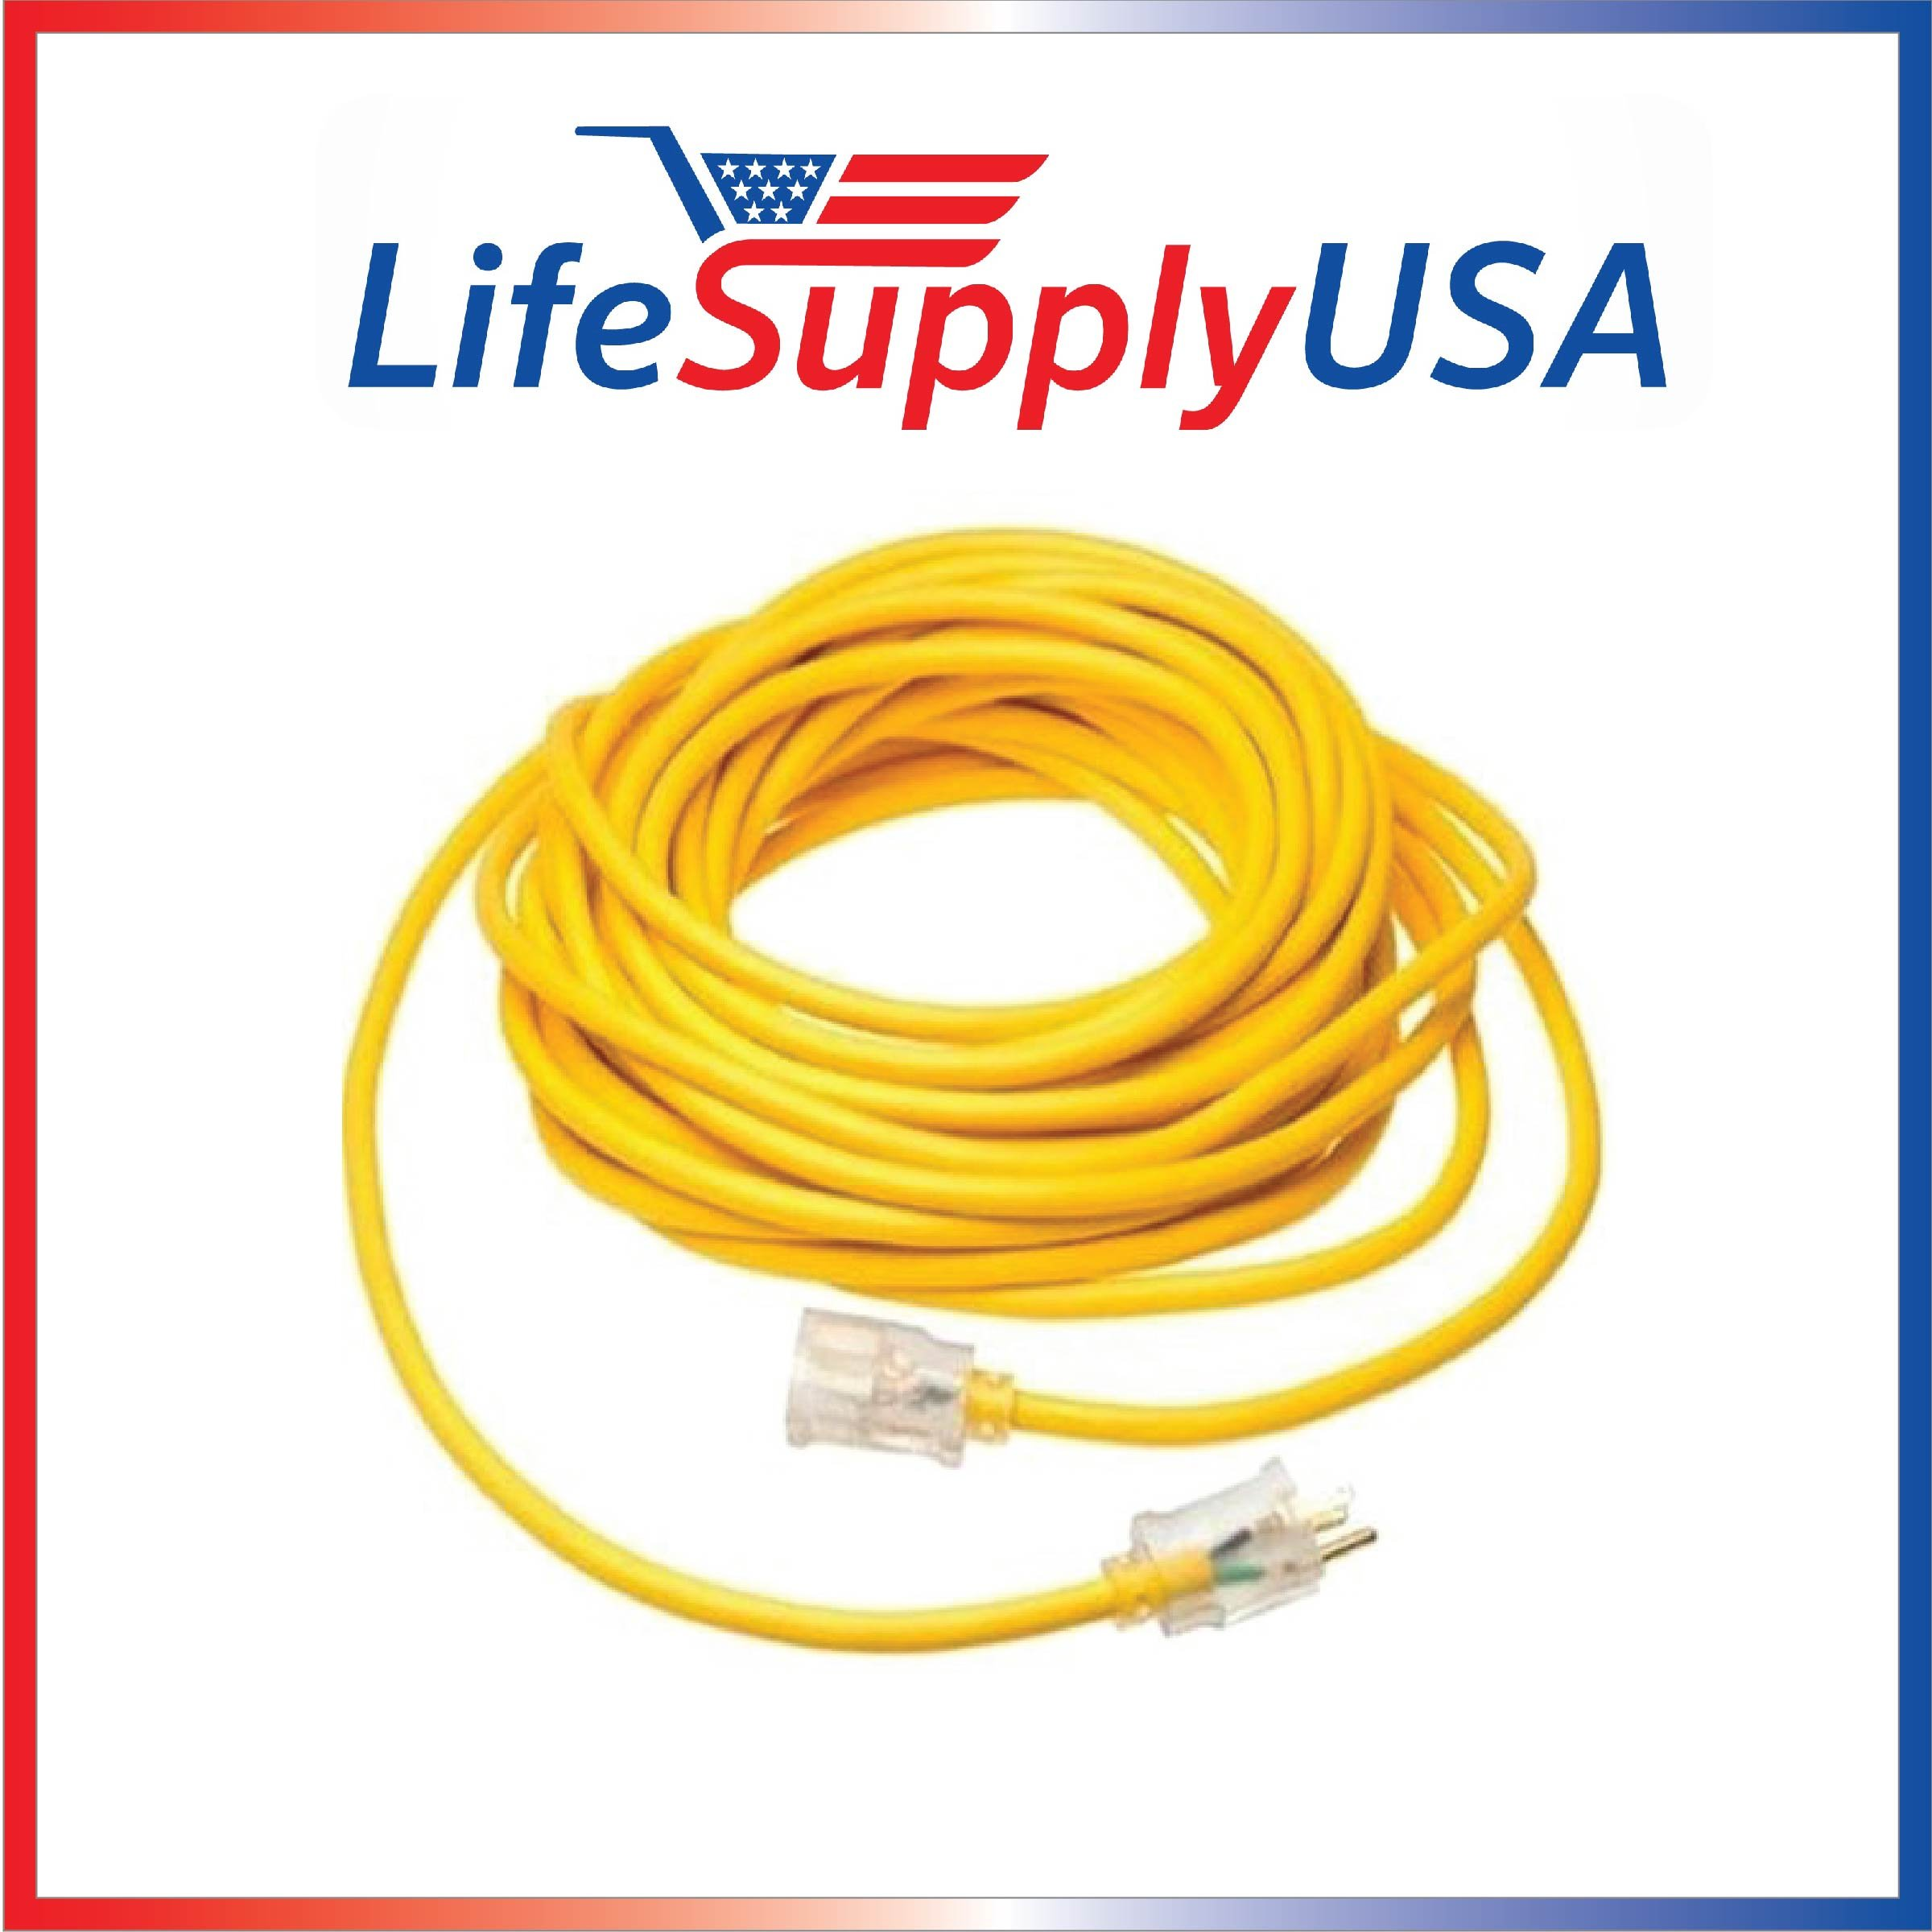 10/3 75 Feet SJT Lighted End Extension Cord, 15 Amp, 125 Volt, 1875 Watt, Super Heavy Duty Outdoor Jacket by LifeSupplyUSA by LifeSupplyUSA